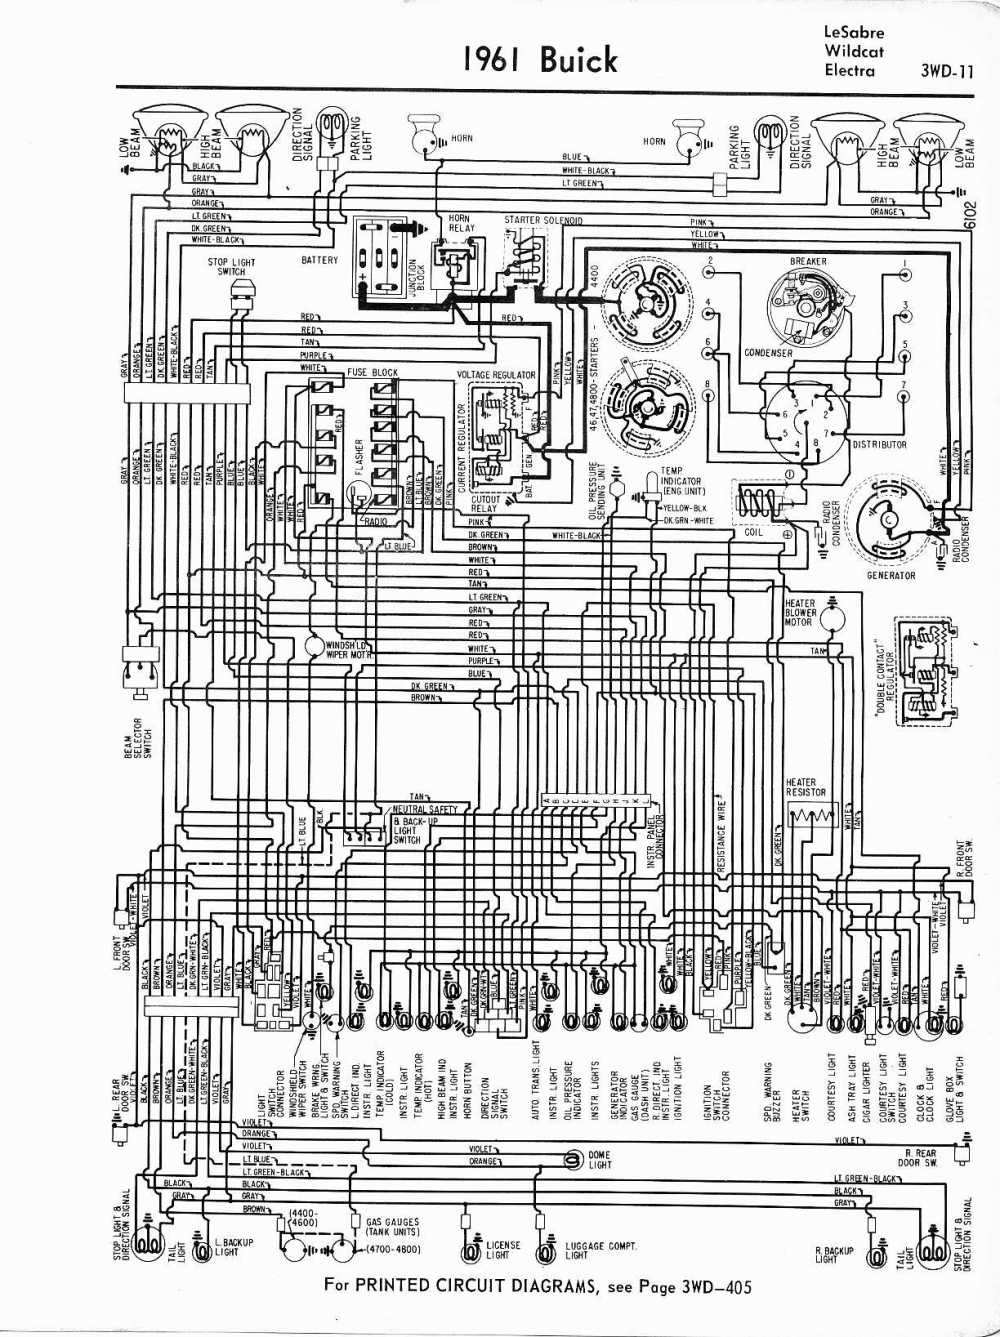 medium resolution of 2004 c6500 wiring diagram wiring diagram load 2004 gmc c6500 wiring diagram 2004 c6500 wiring diagram